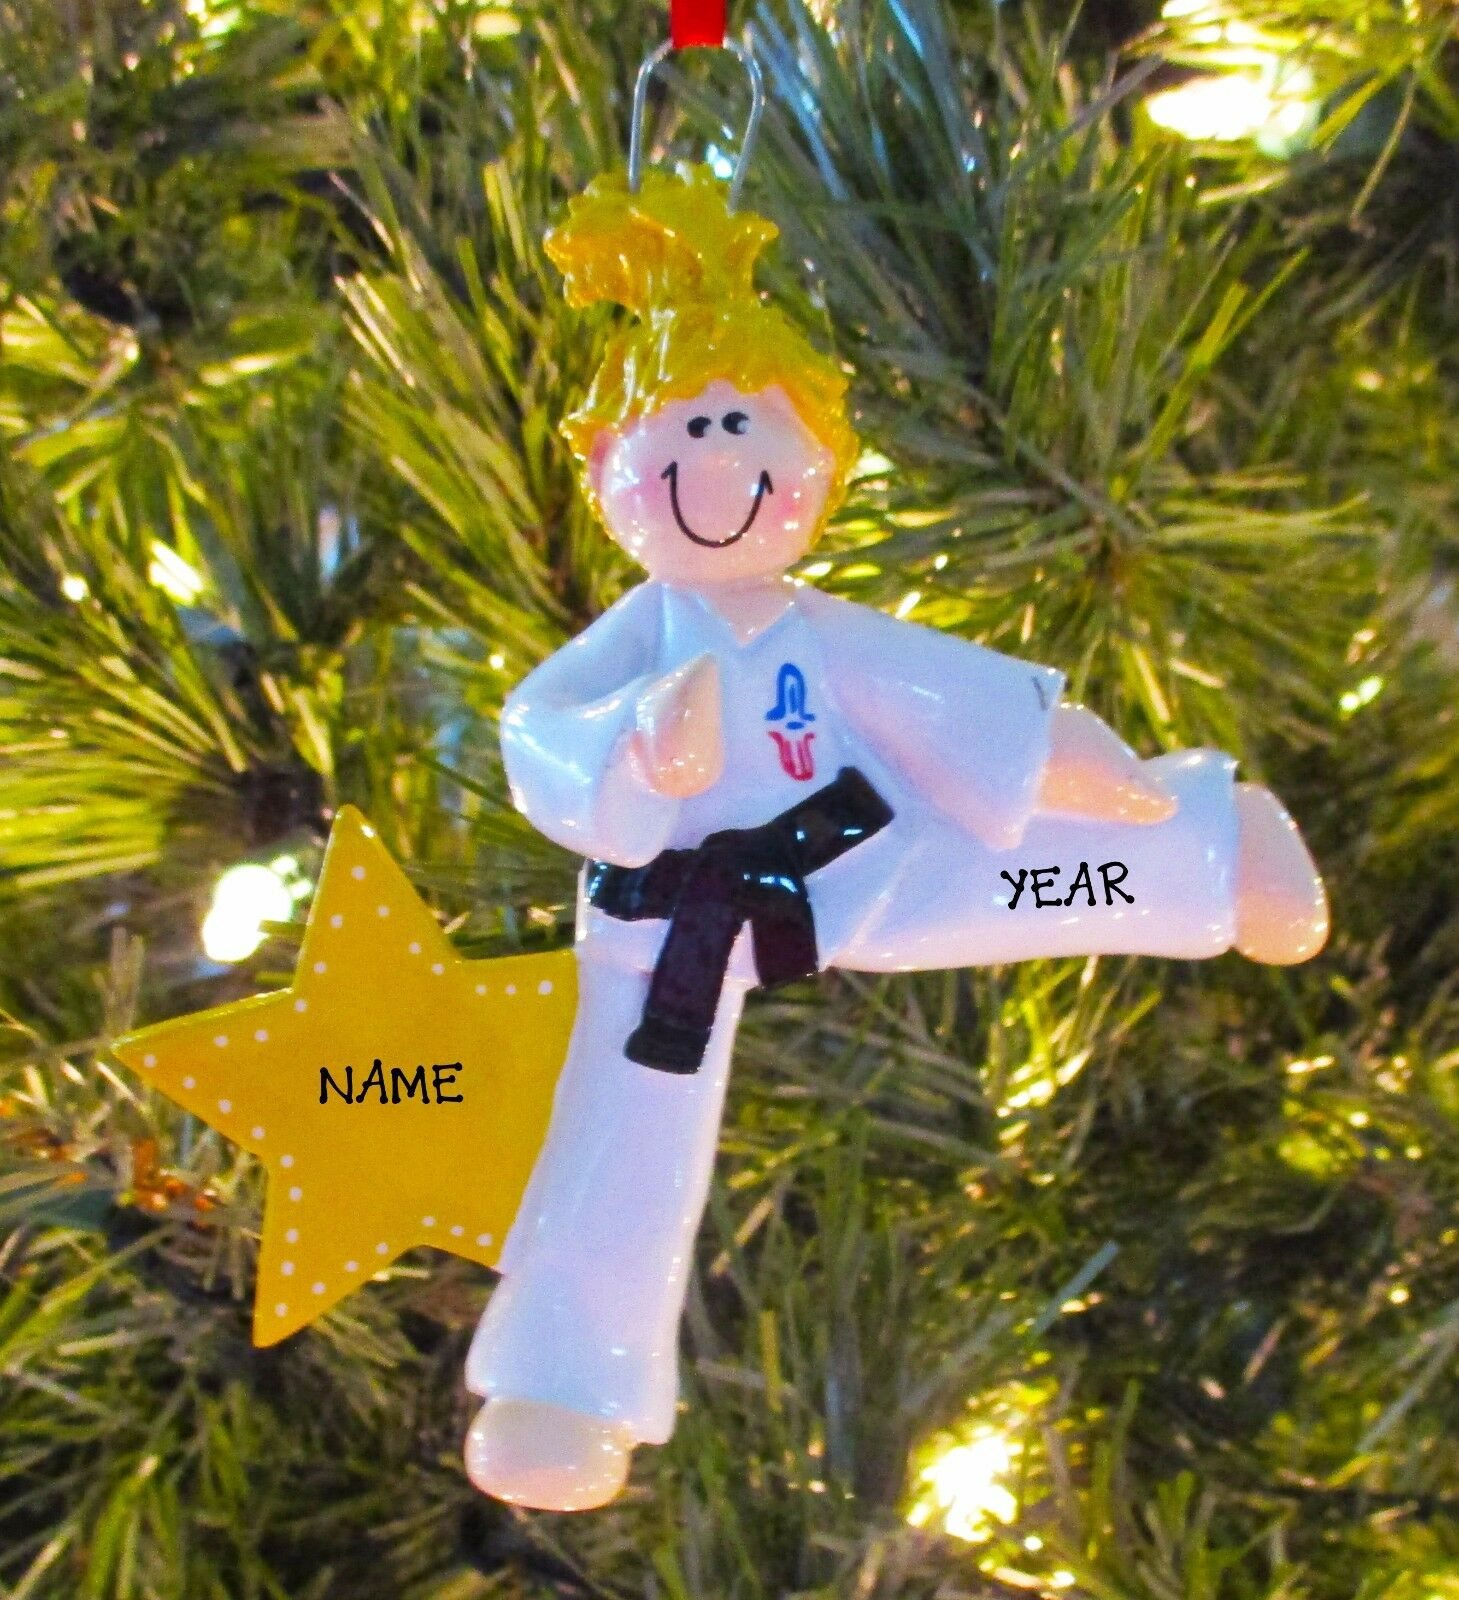 Karate girl blonde personalize it yourself christmas tree ornament picture 1 of 4 solutioingenieria Choice Image